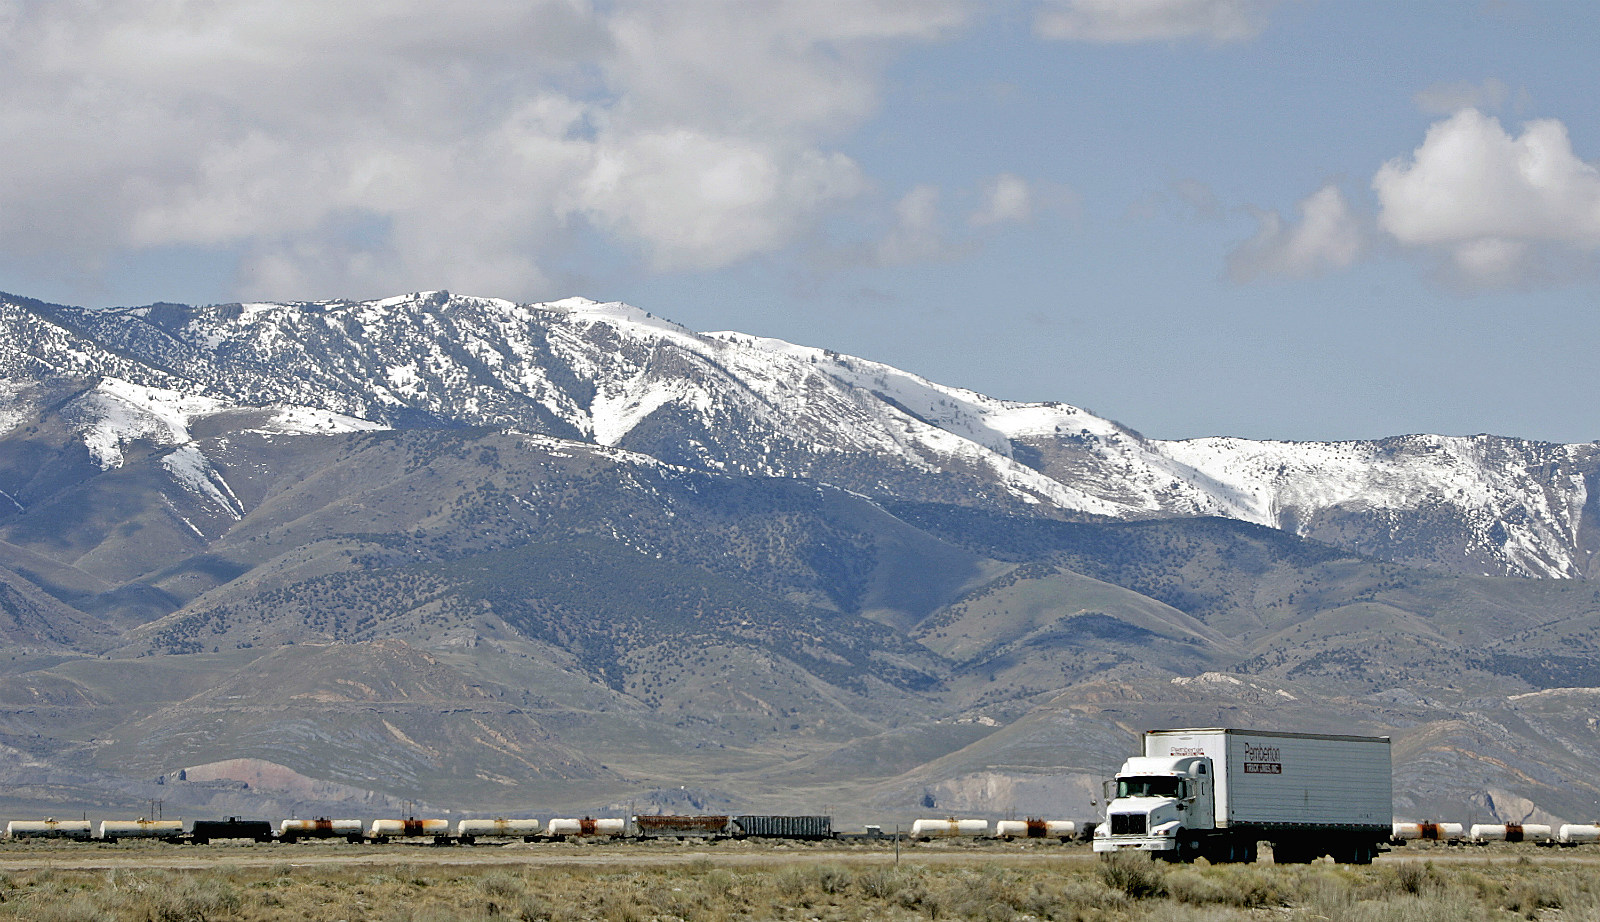 Picture Proves The \'Highway To Heaven\' Is On I-80 In Wyoming